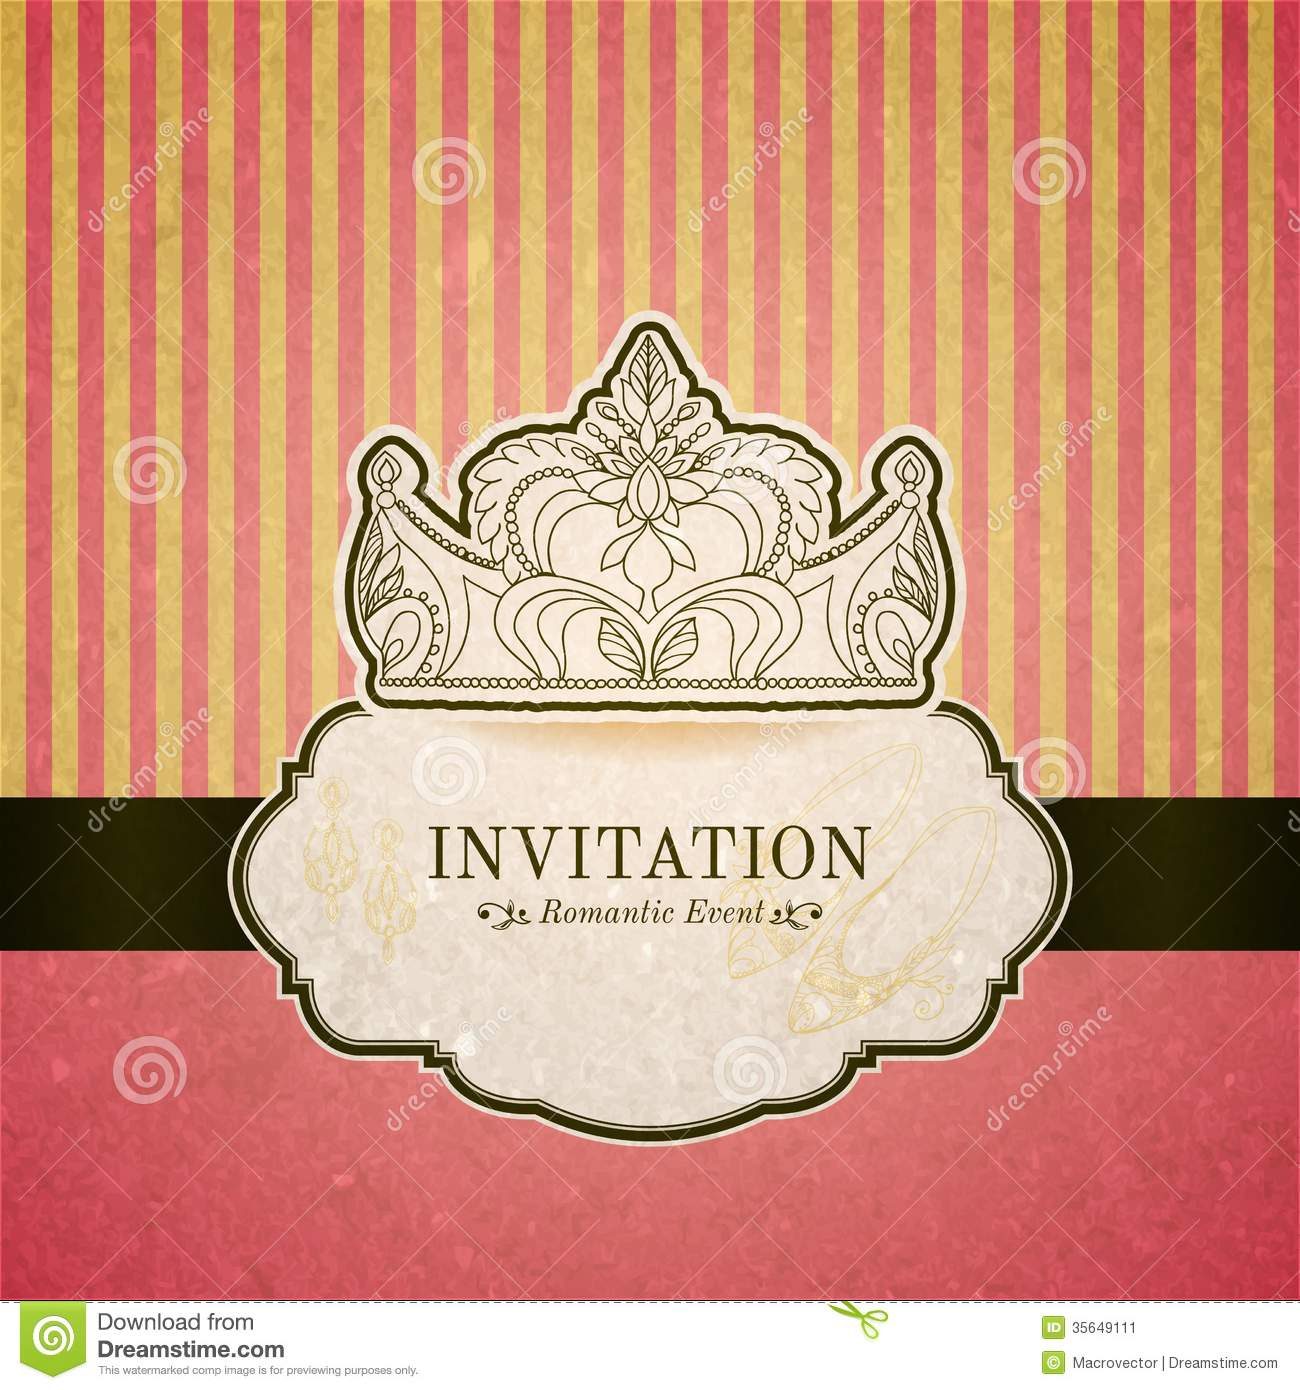 Princess Crown Baby Shower Invitations as beautiful invitations ideas